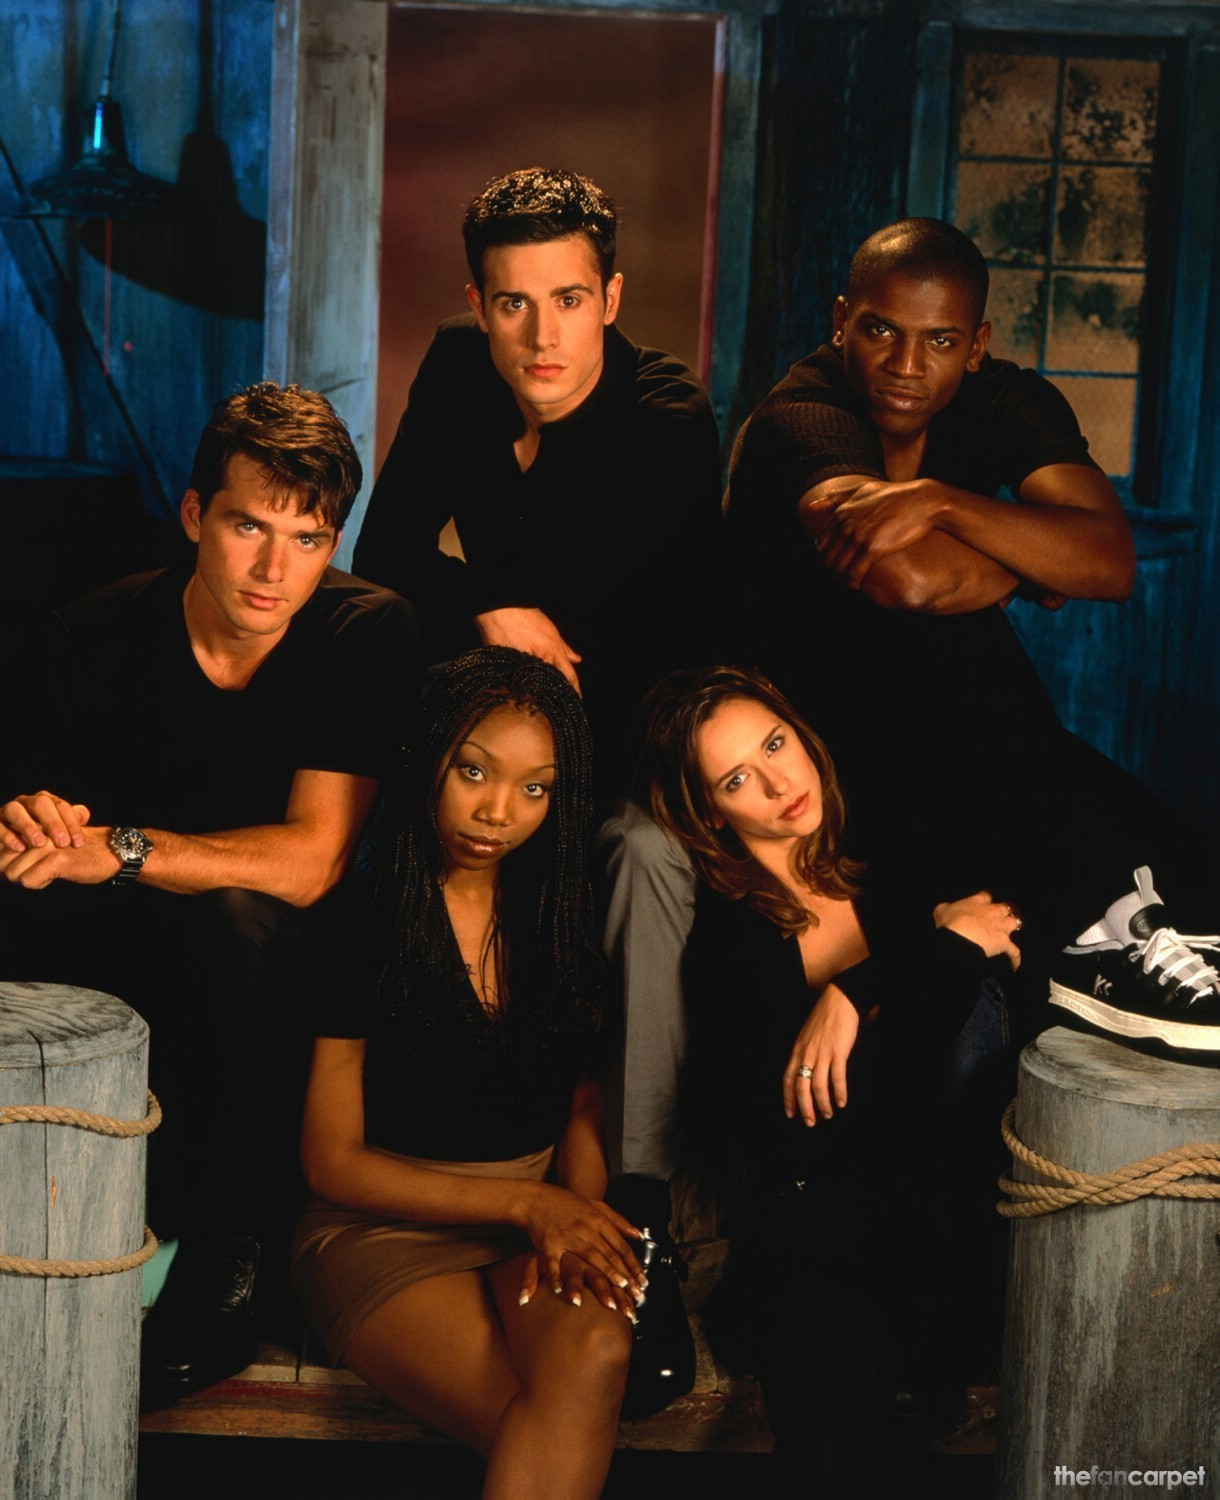 Brandy Norwood,Freddie Prinze Jr.,Jennifer Love Hewitt,Matthew Settle,Mekhi Phifer